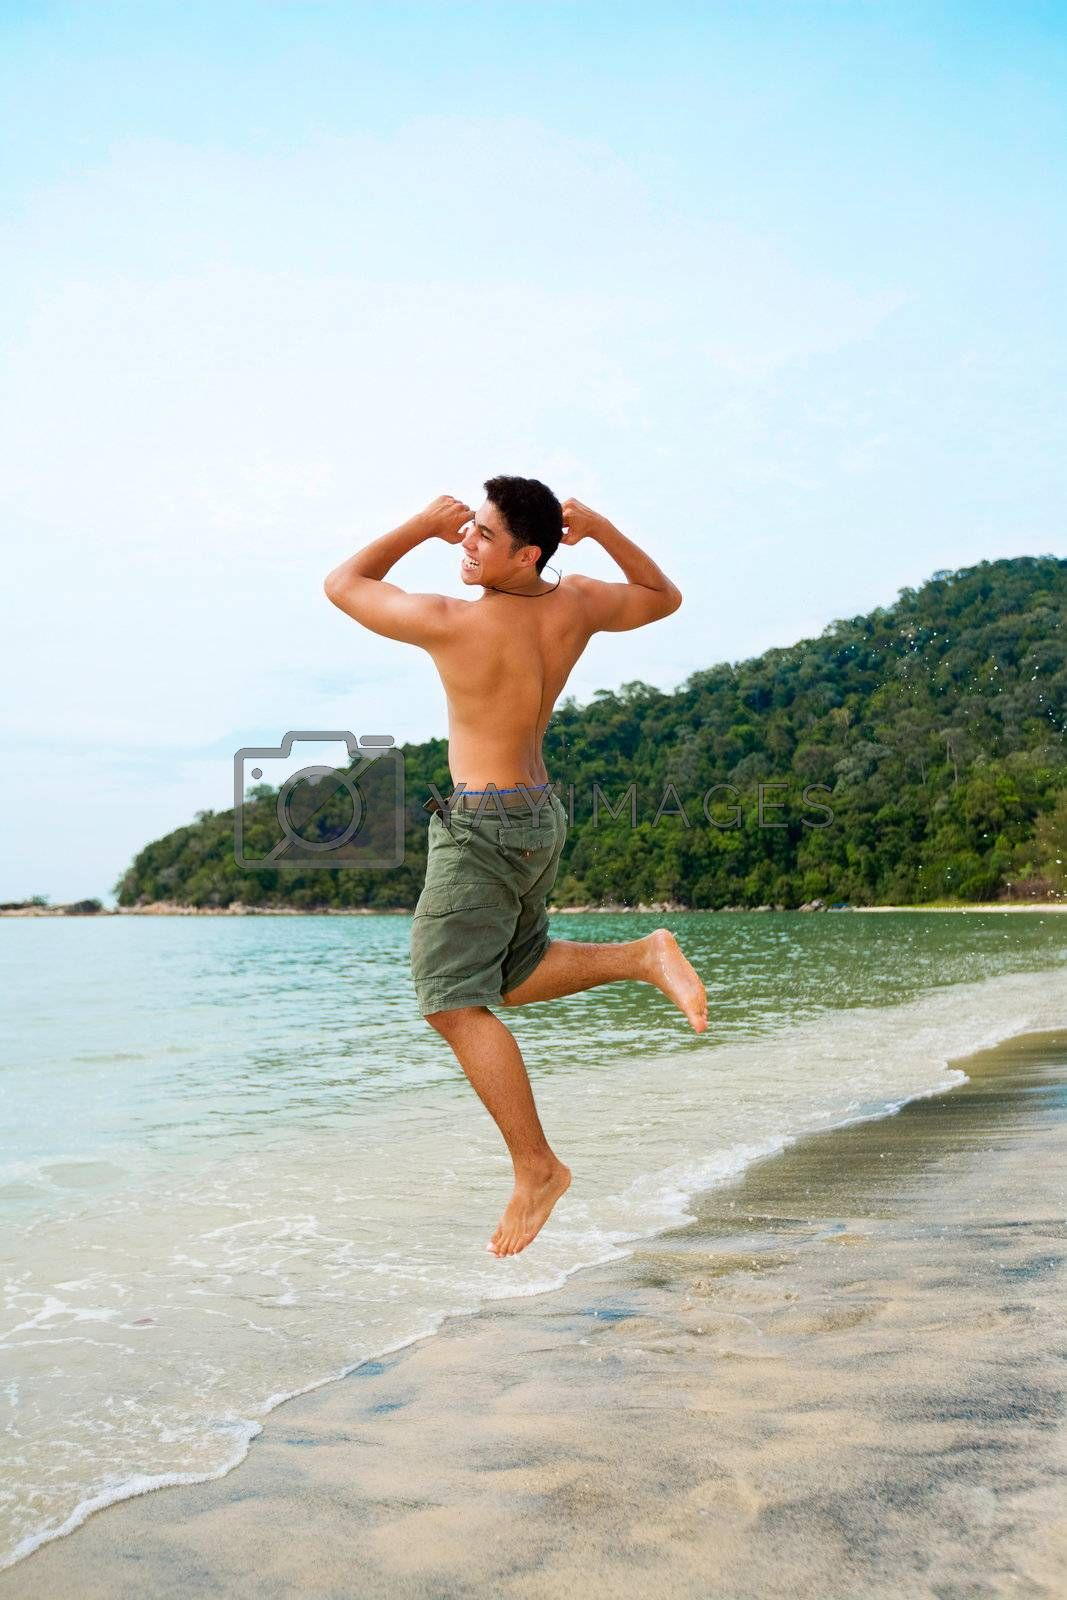 man jump up happily by the beach with excitement after successfully reach his goal